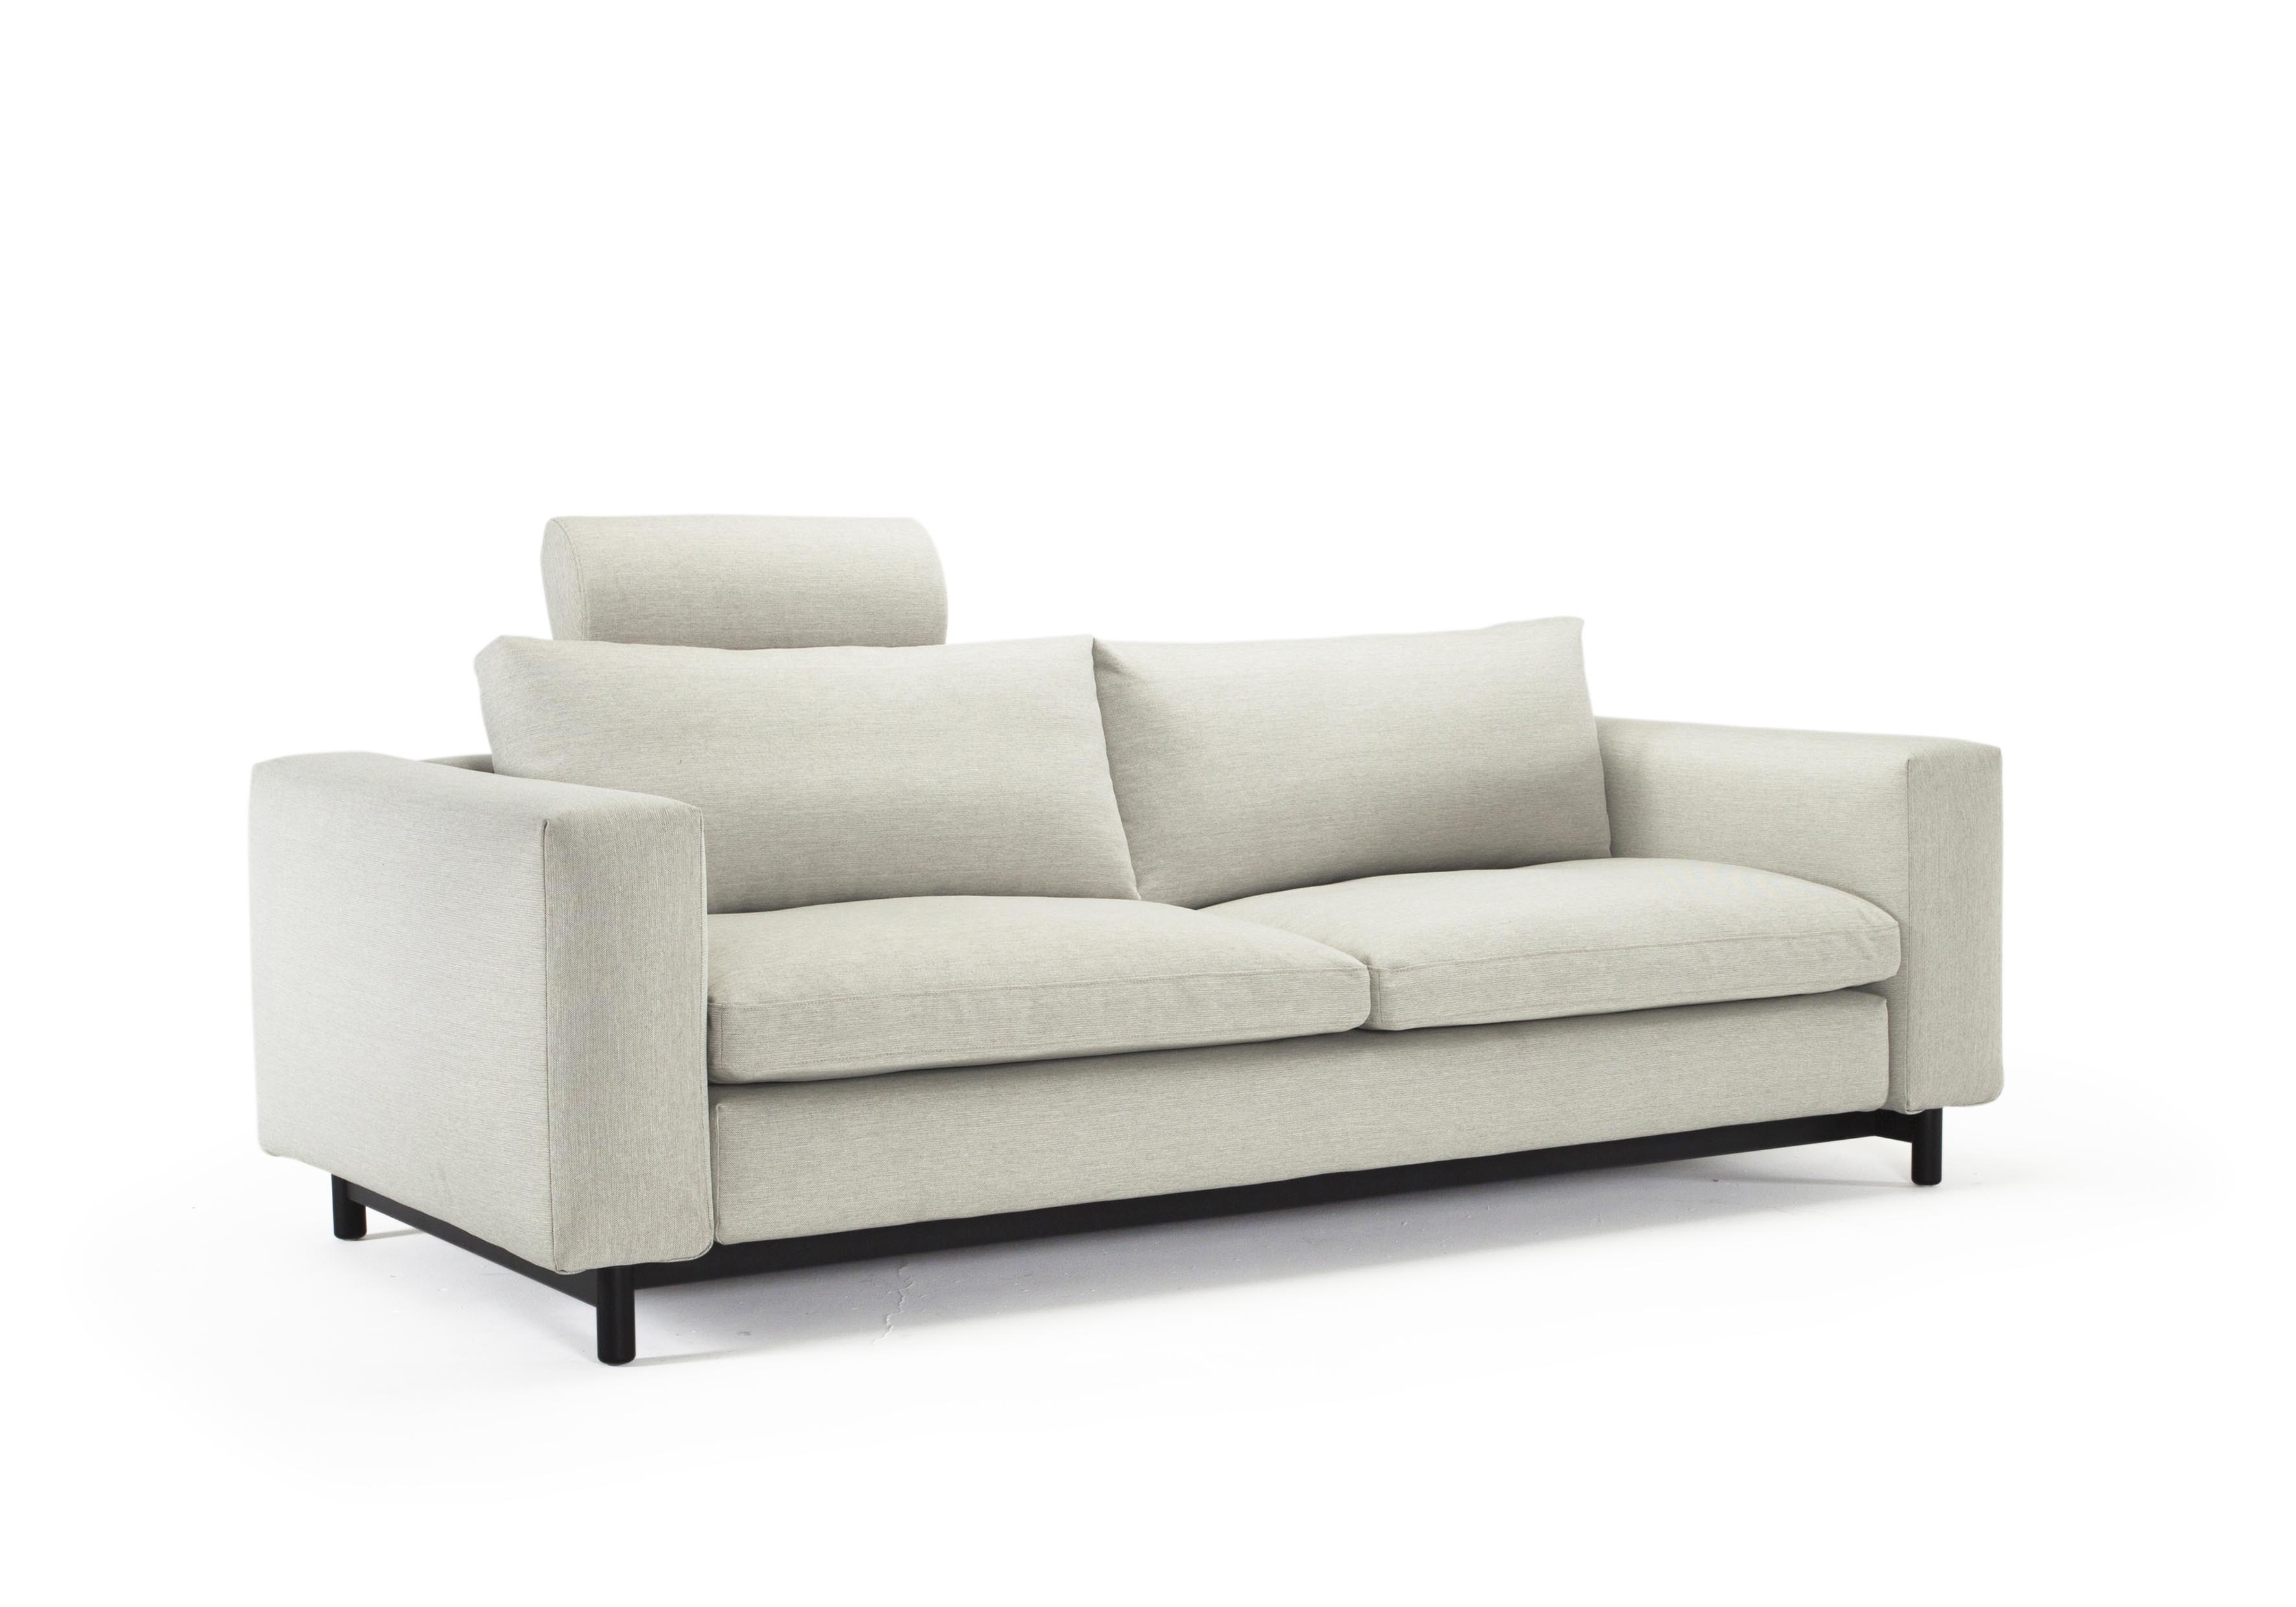 Magni Sofa Bed Queen Size Mixed Dance Natural by Innovation